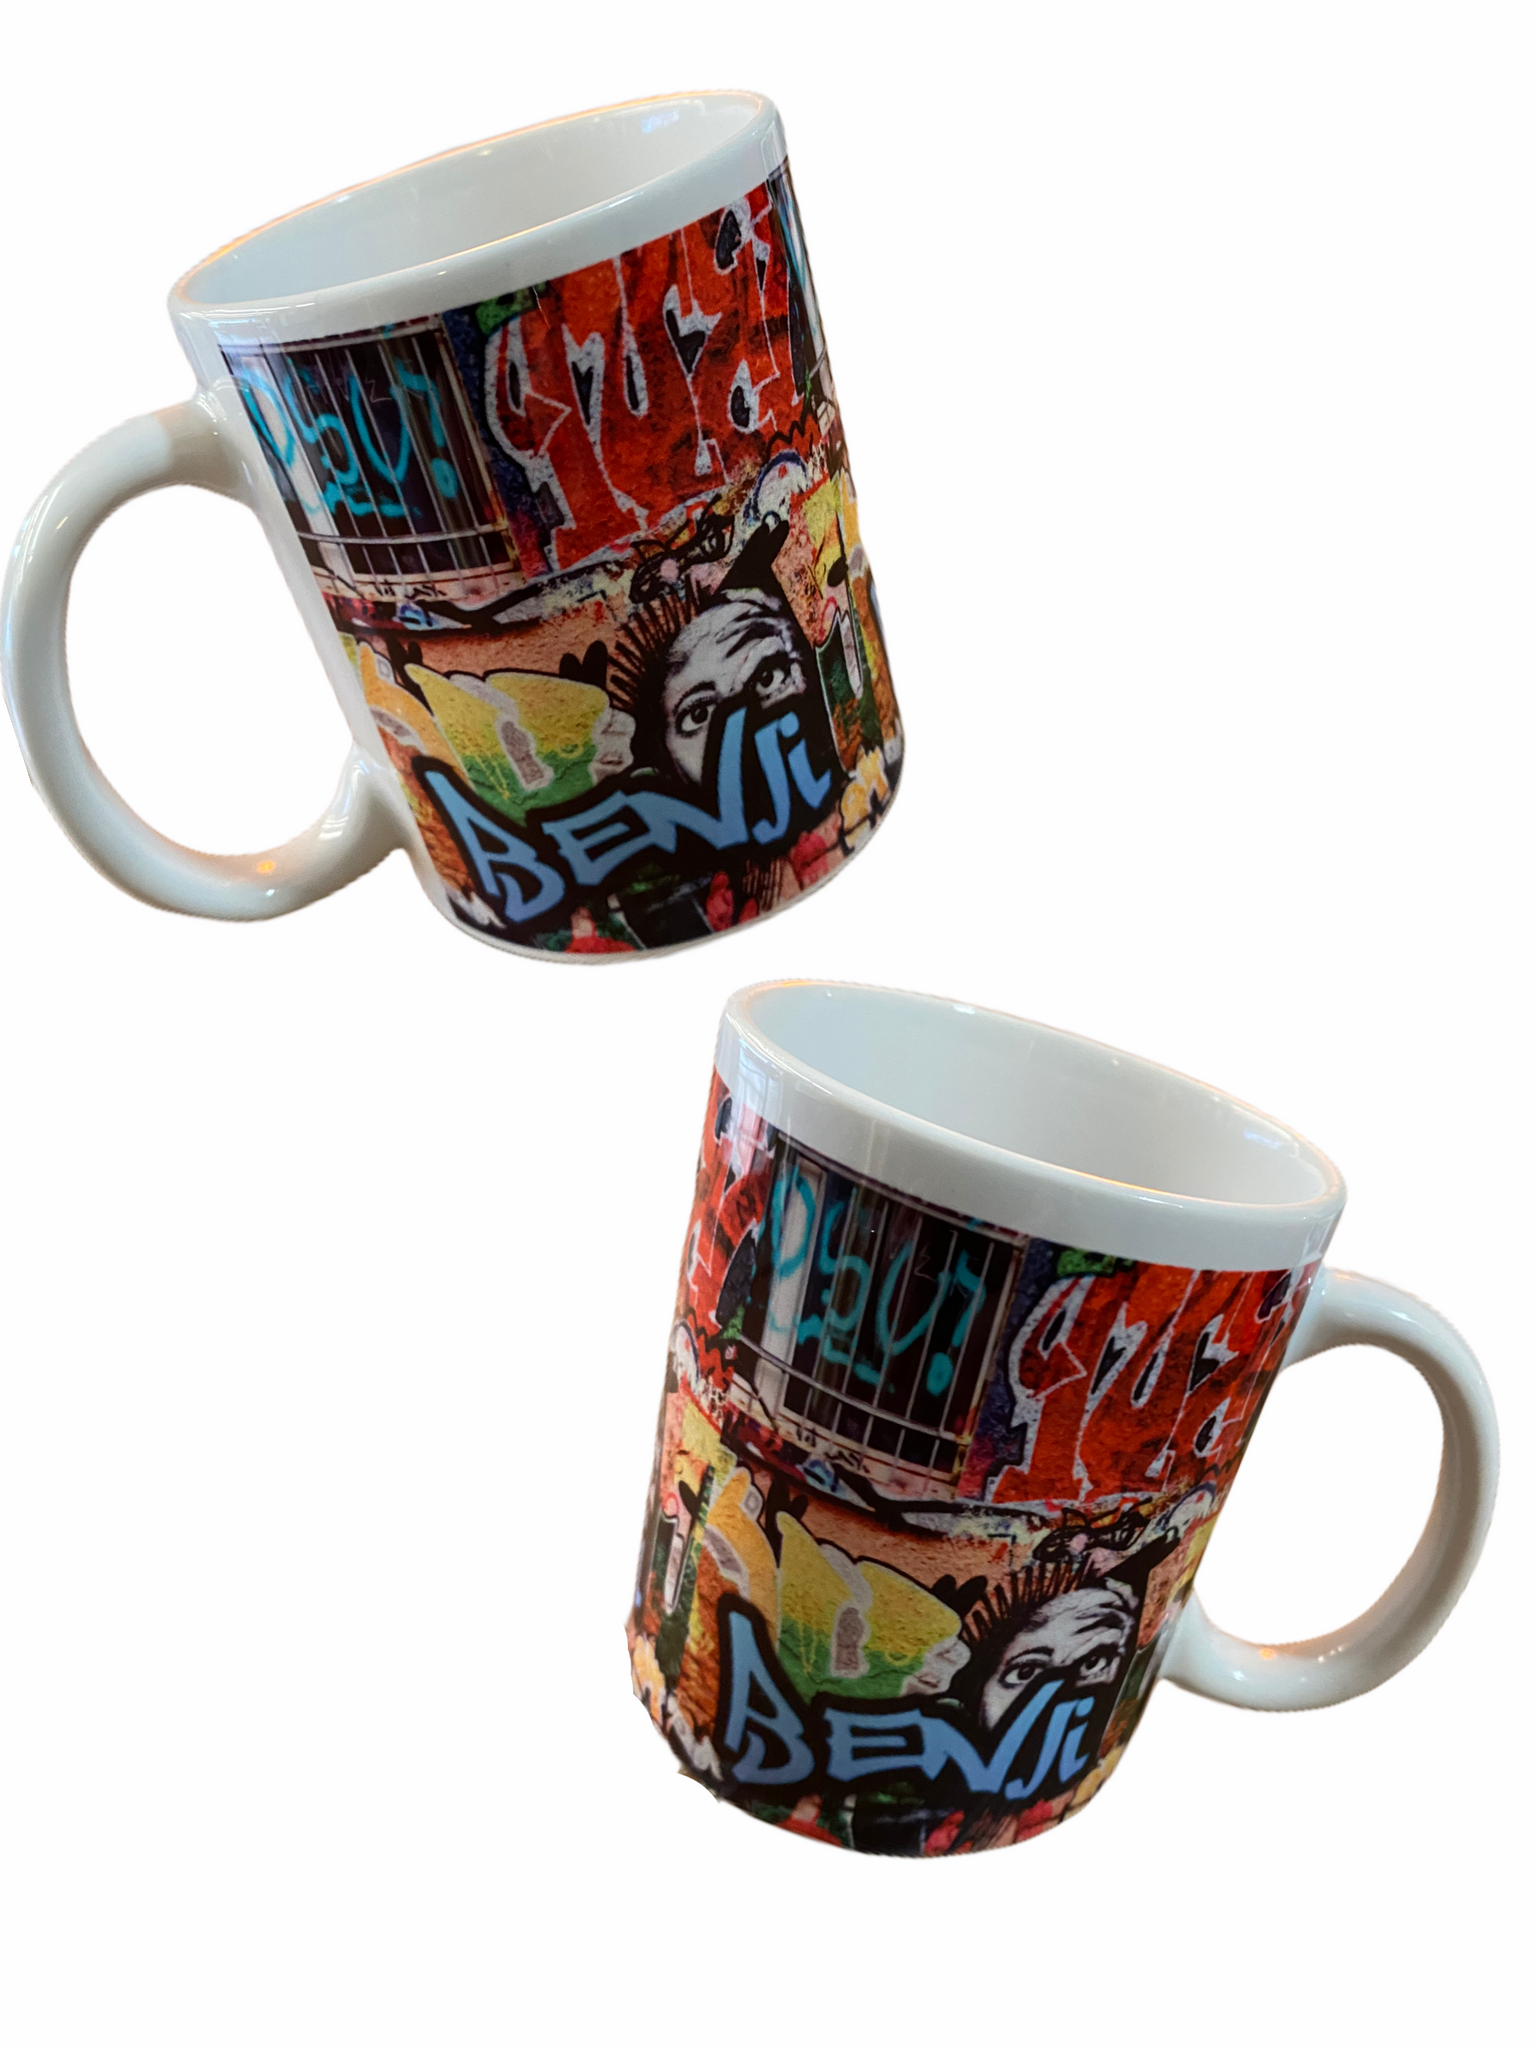 Personalised Graffiti Pop Art Mug